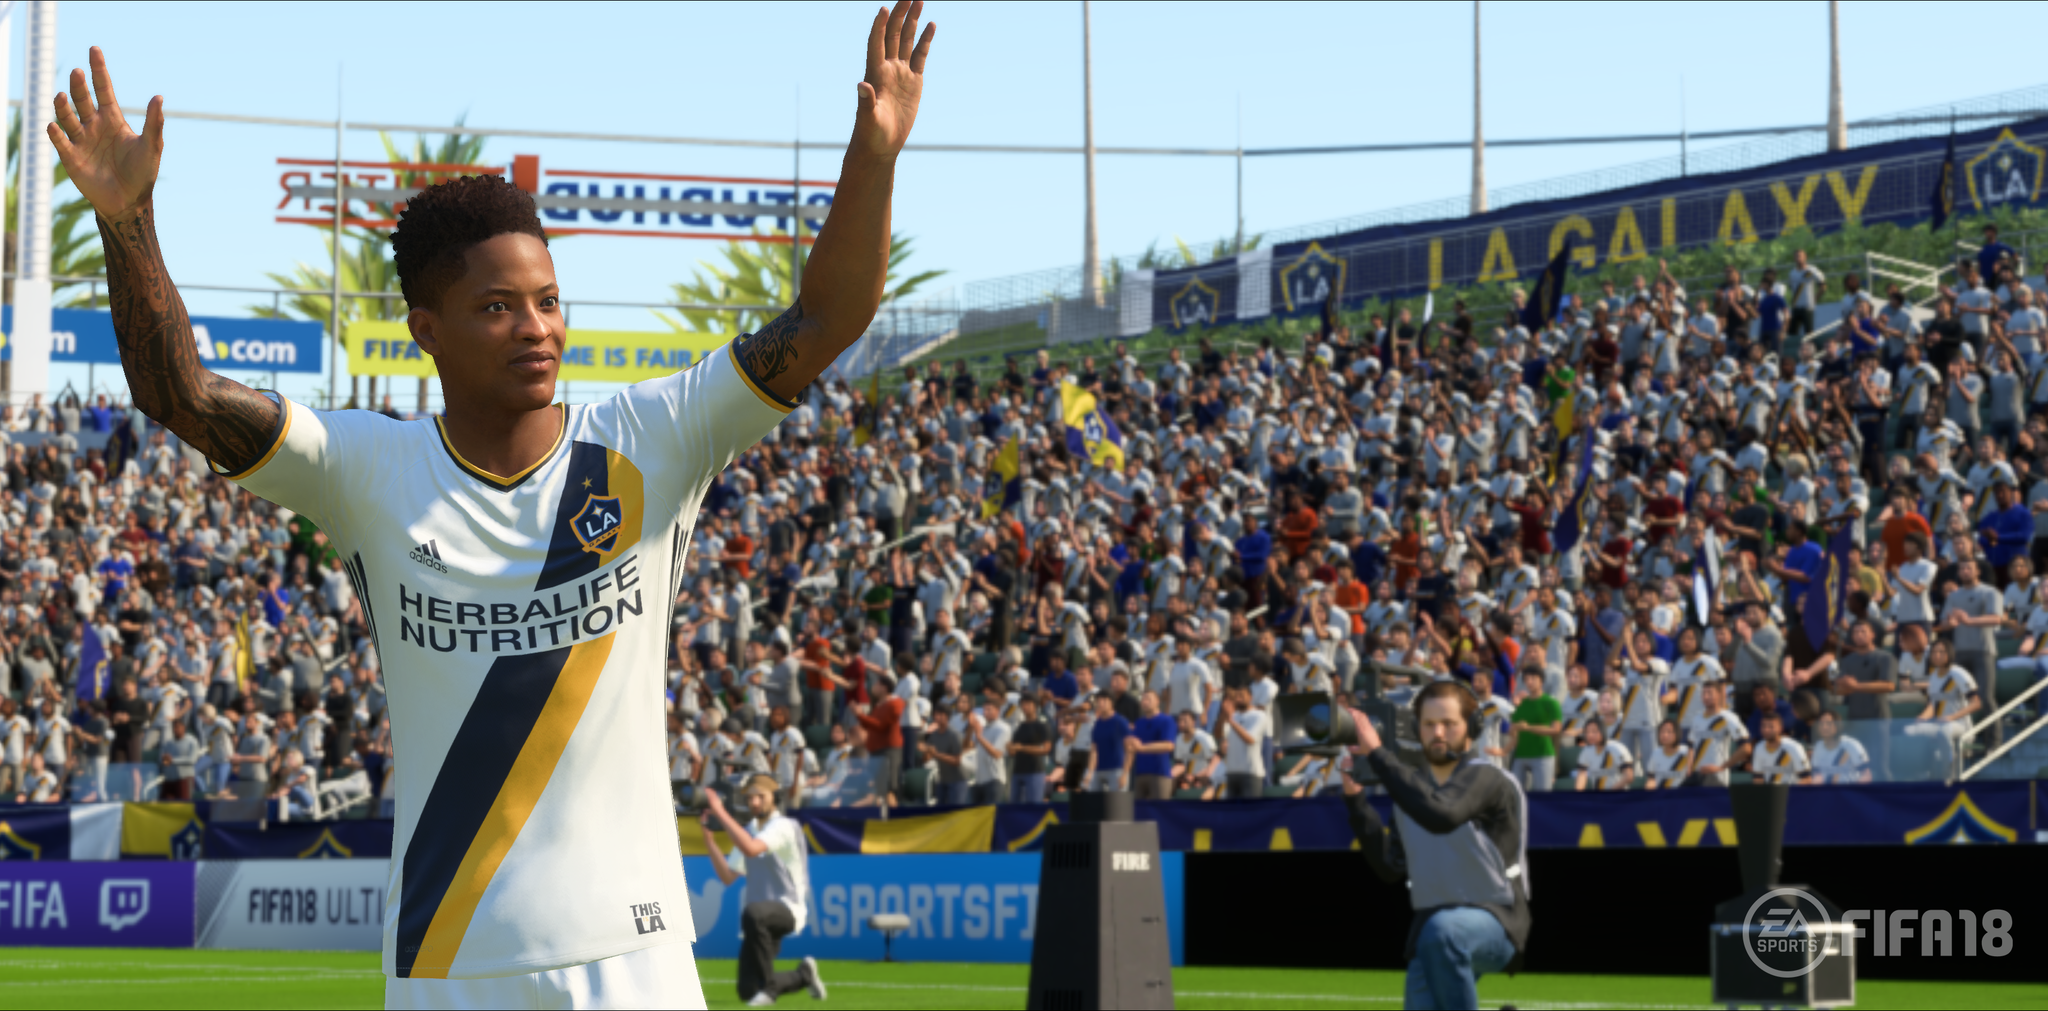 Hunter Returns allows to customise Alex Hunter's appearance